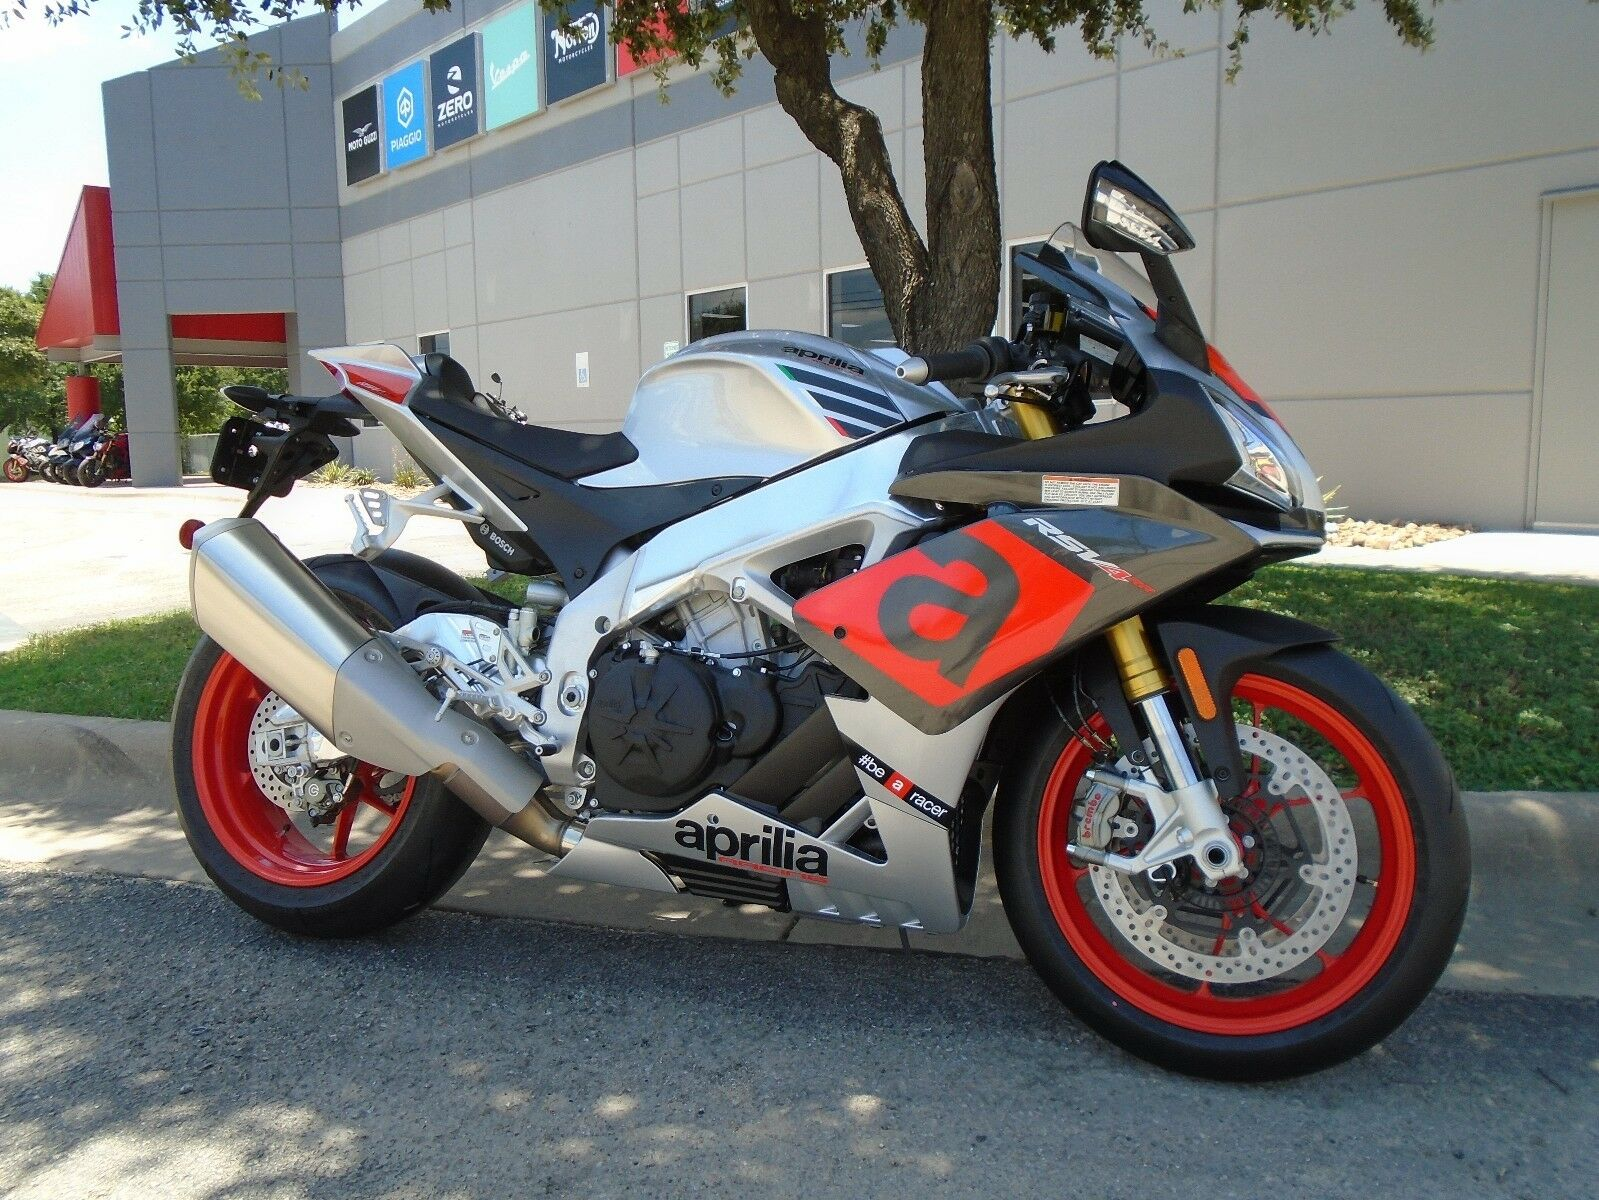 2017 Aprilia RSV4-RR Gray, No Fees, Invoice Pricing!  2017 Aprilia RSV4-RR, Gray, NO FEES - Invoice Pricing!